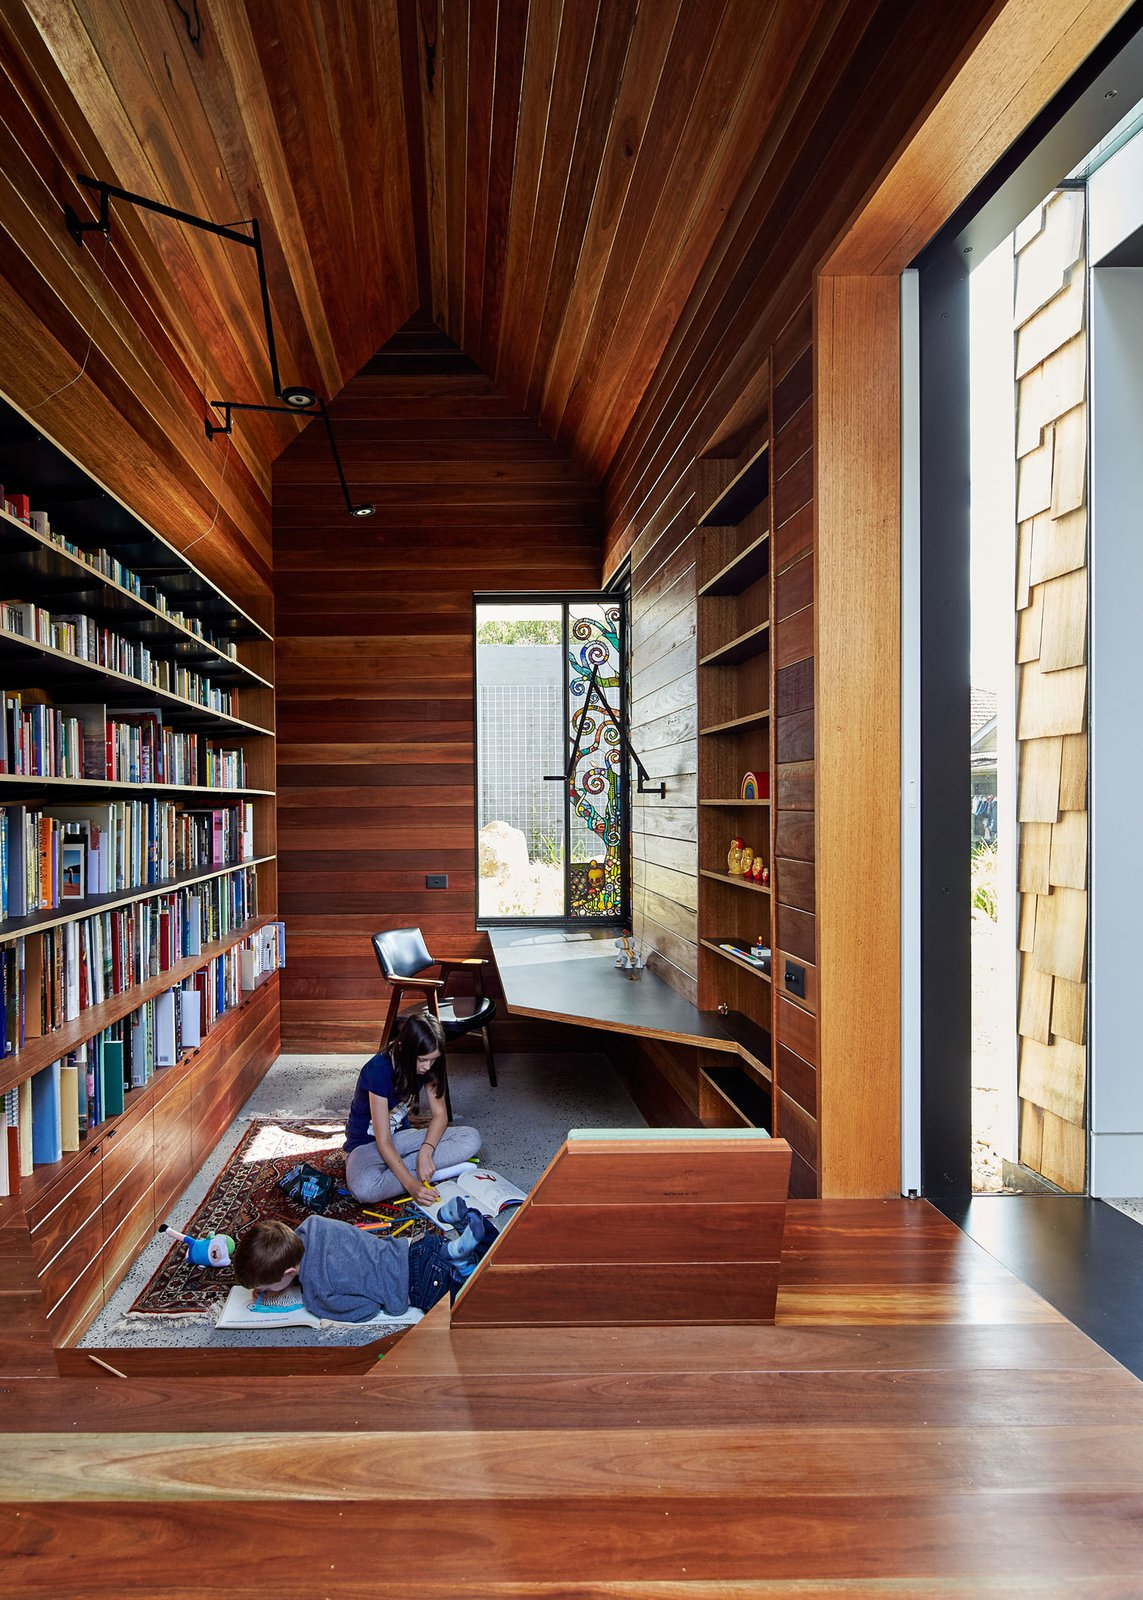 """The library is lined in reclaimed spotted gum that Maynard says """"brings with it wisdom from its previous life."""" A stained glass window by Leigh Schellekens makes the contemplative room feel like a domestic chapel."""